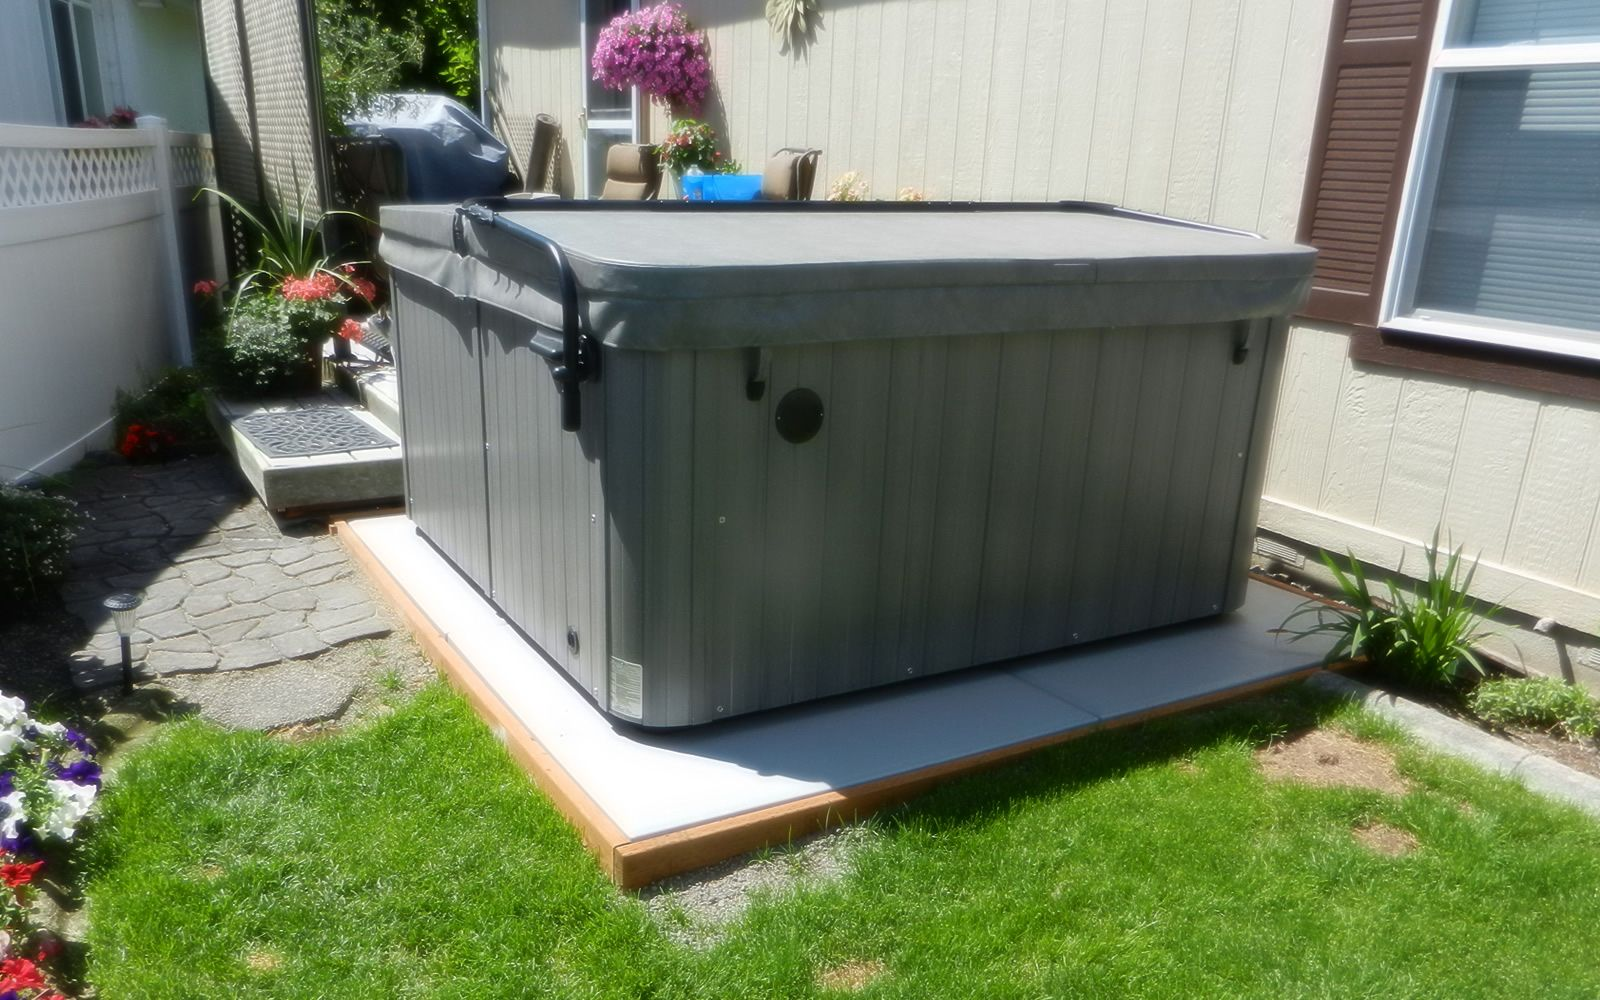 Ez Pad Hot Tub Spa Base Photos Pics And Testimonials Reviews Wiring Instructions How To Install A No Concrete Sand Insulates From Groundreal People Discuss Installation